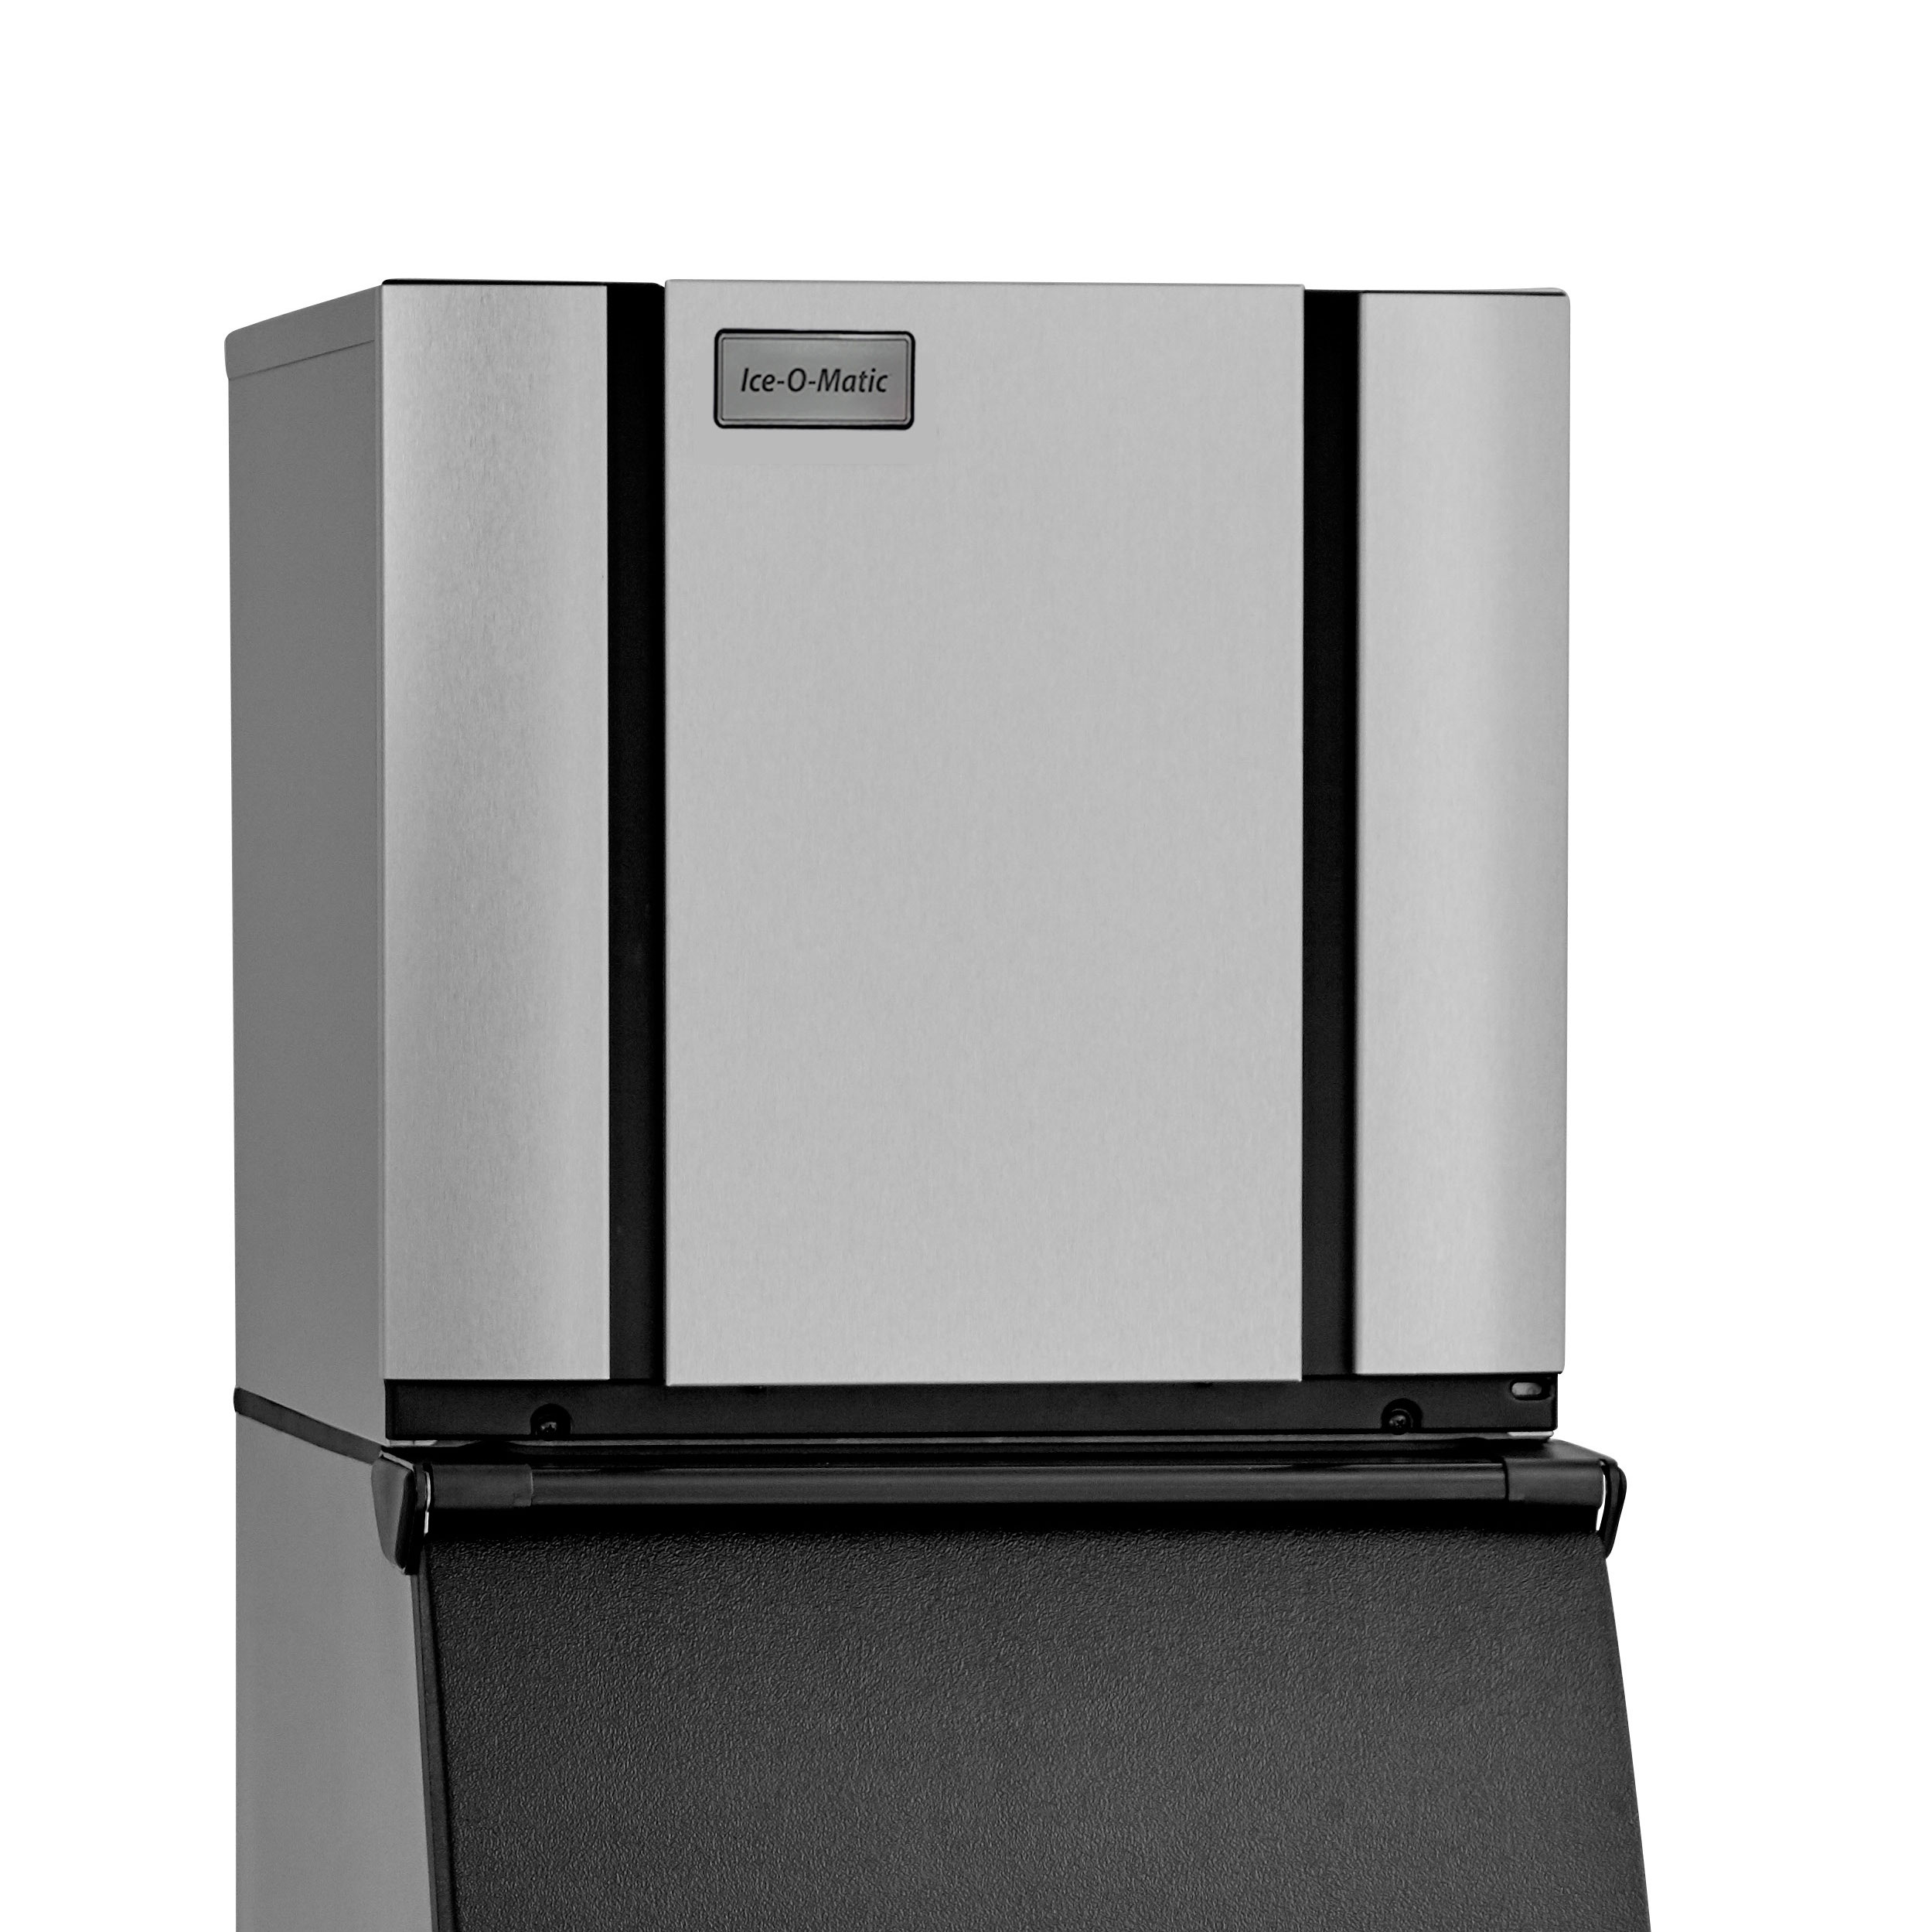 Ice-O-Matic CIM0836GA ice maker, cube-style